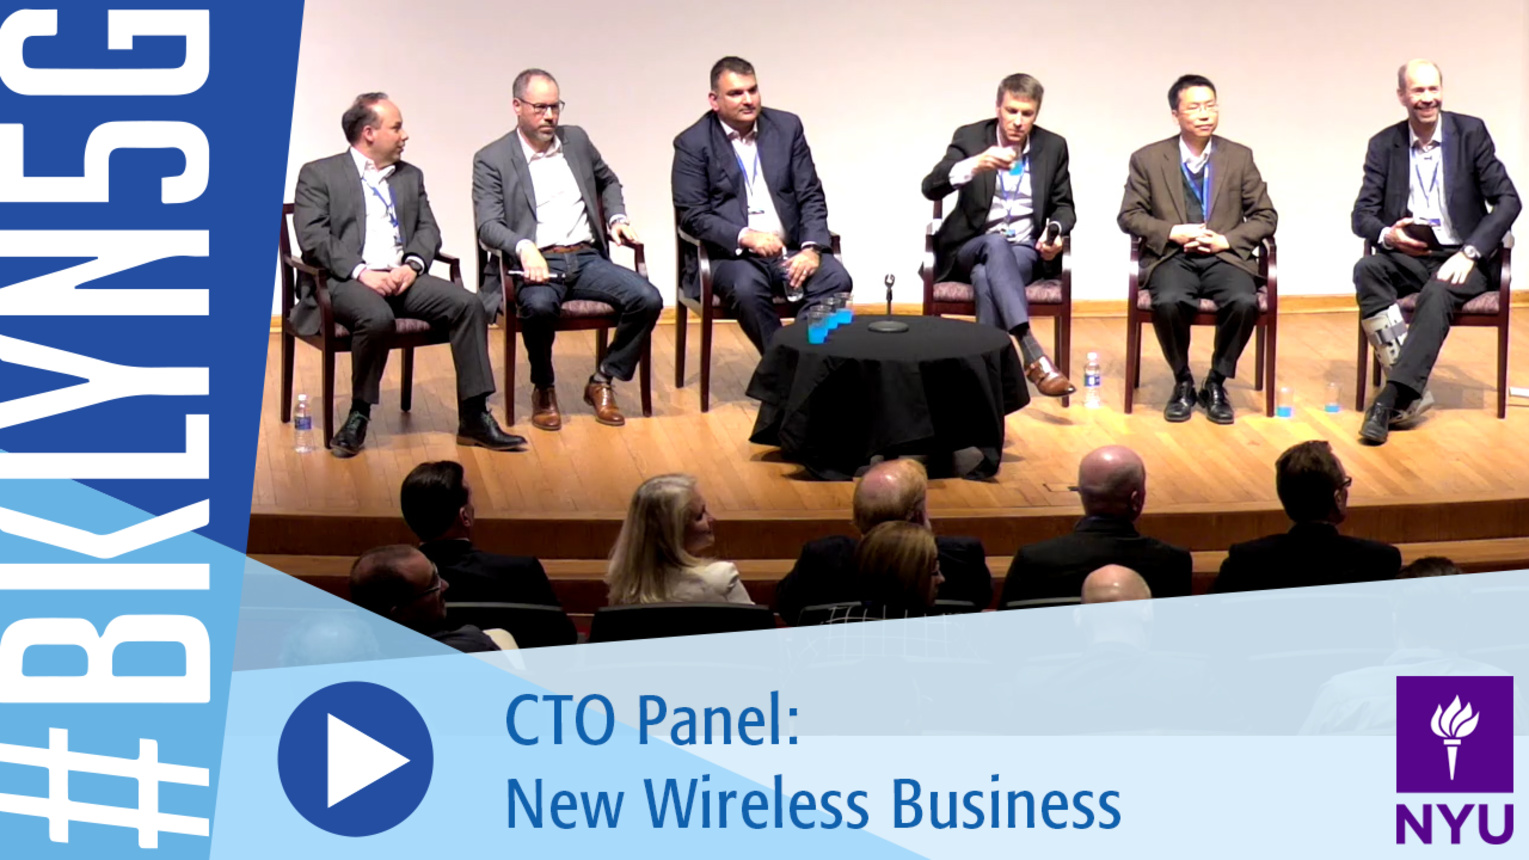 Brooklyn 5G 2016: CTO Panel: New Wireless Business